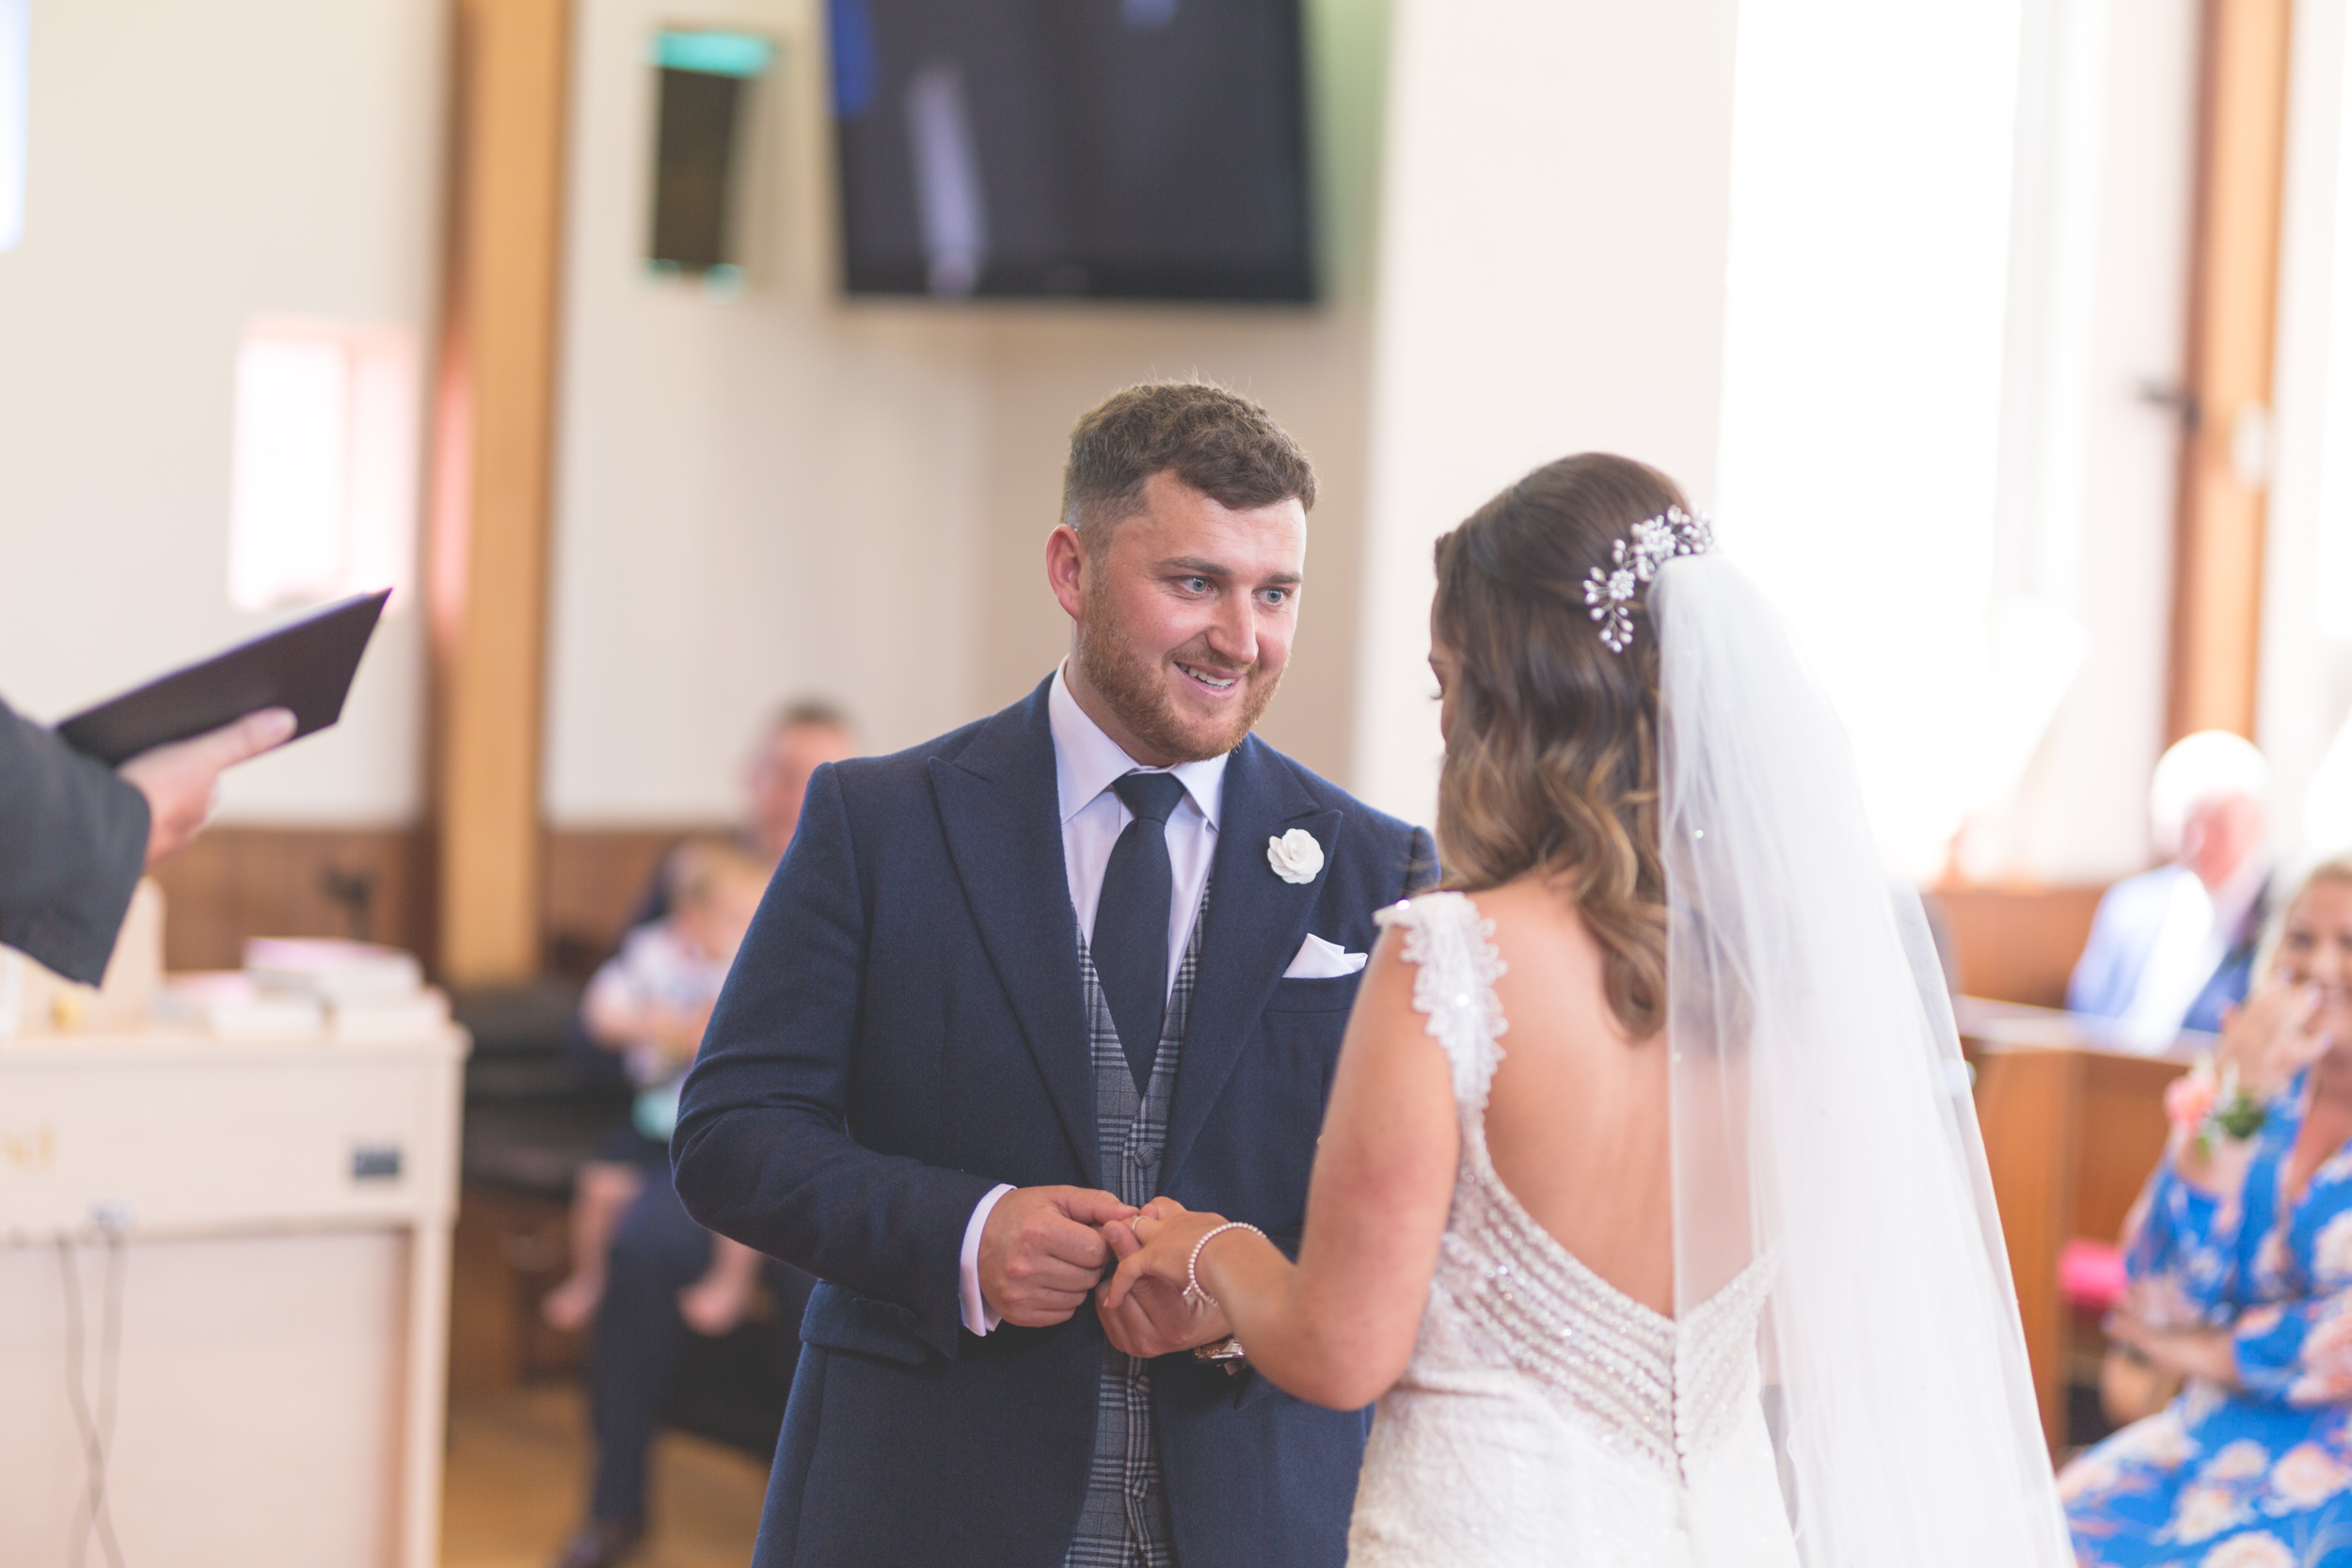 Brian McEwan | Northern Ireland Wedding Photographer | Rebecca & Michael | Ceremony-72.jpg